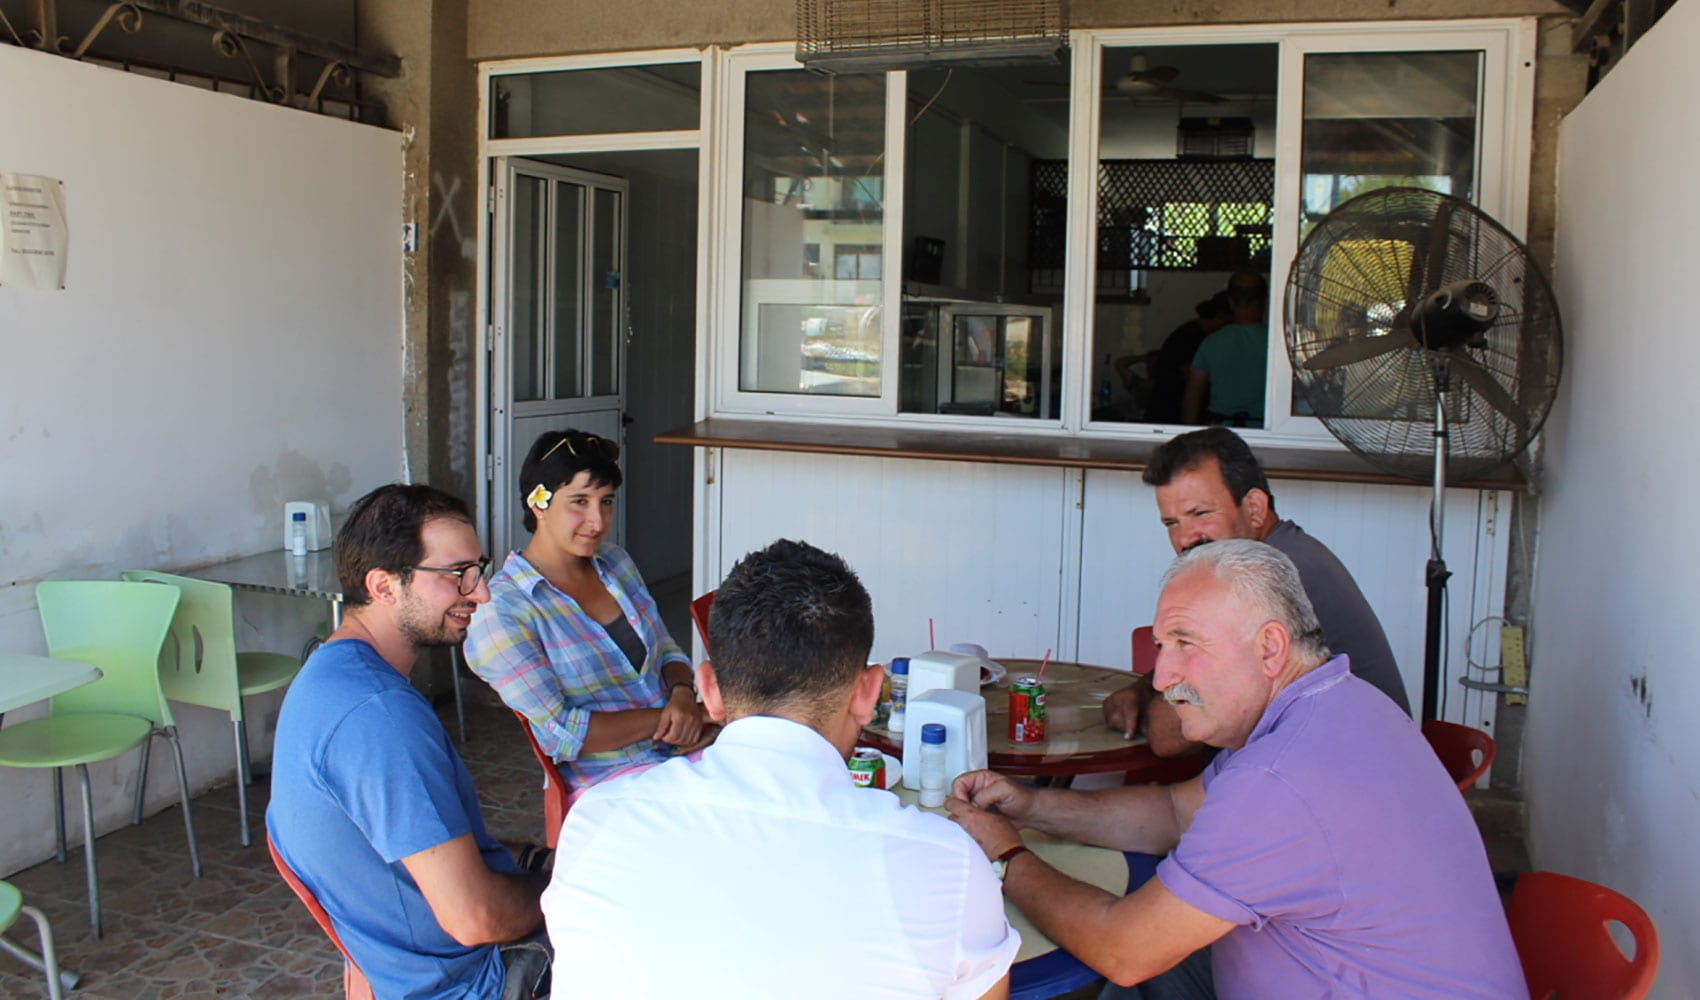 Antoniou and her team chat with locals at a restaurant